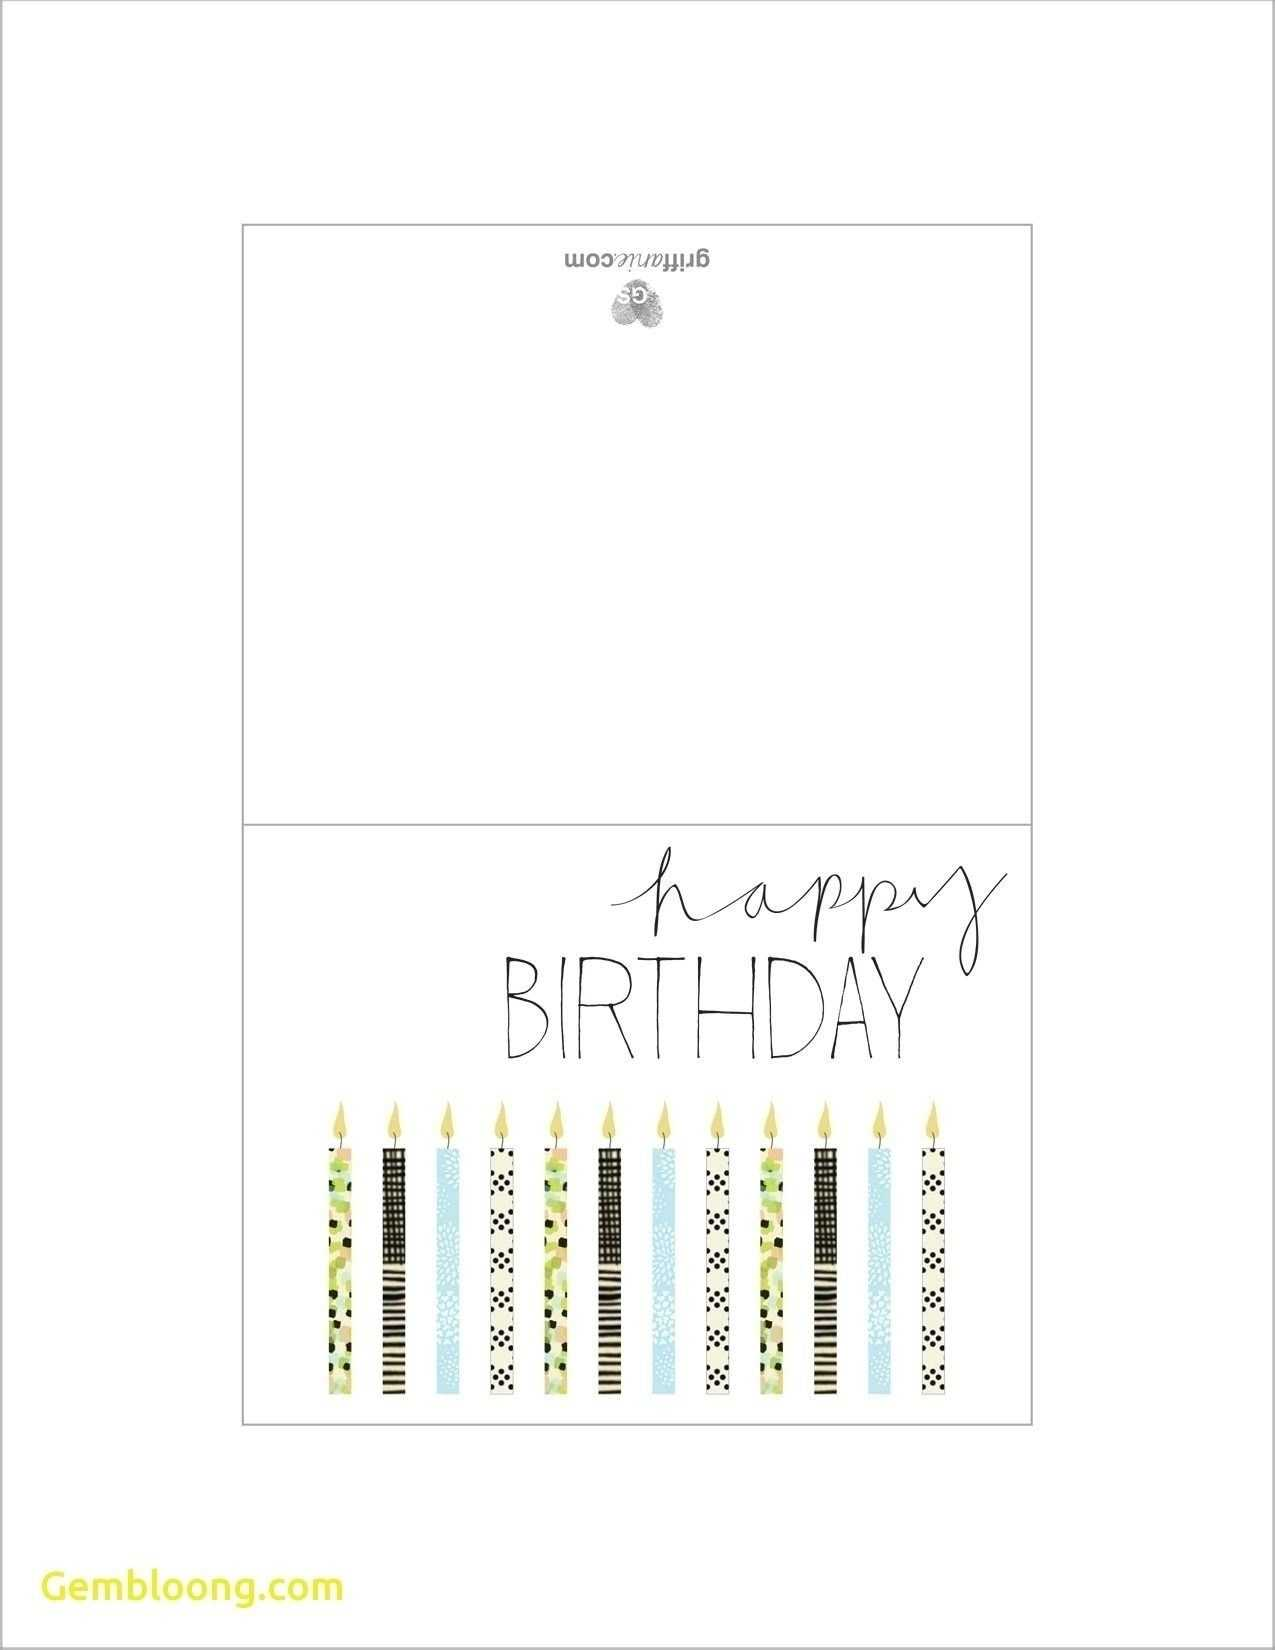 012 Printable Birthday Card Template Ideas Cards Foldable Throughout Foldable Birthday Card Template